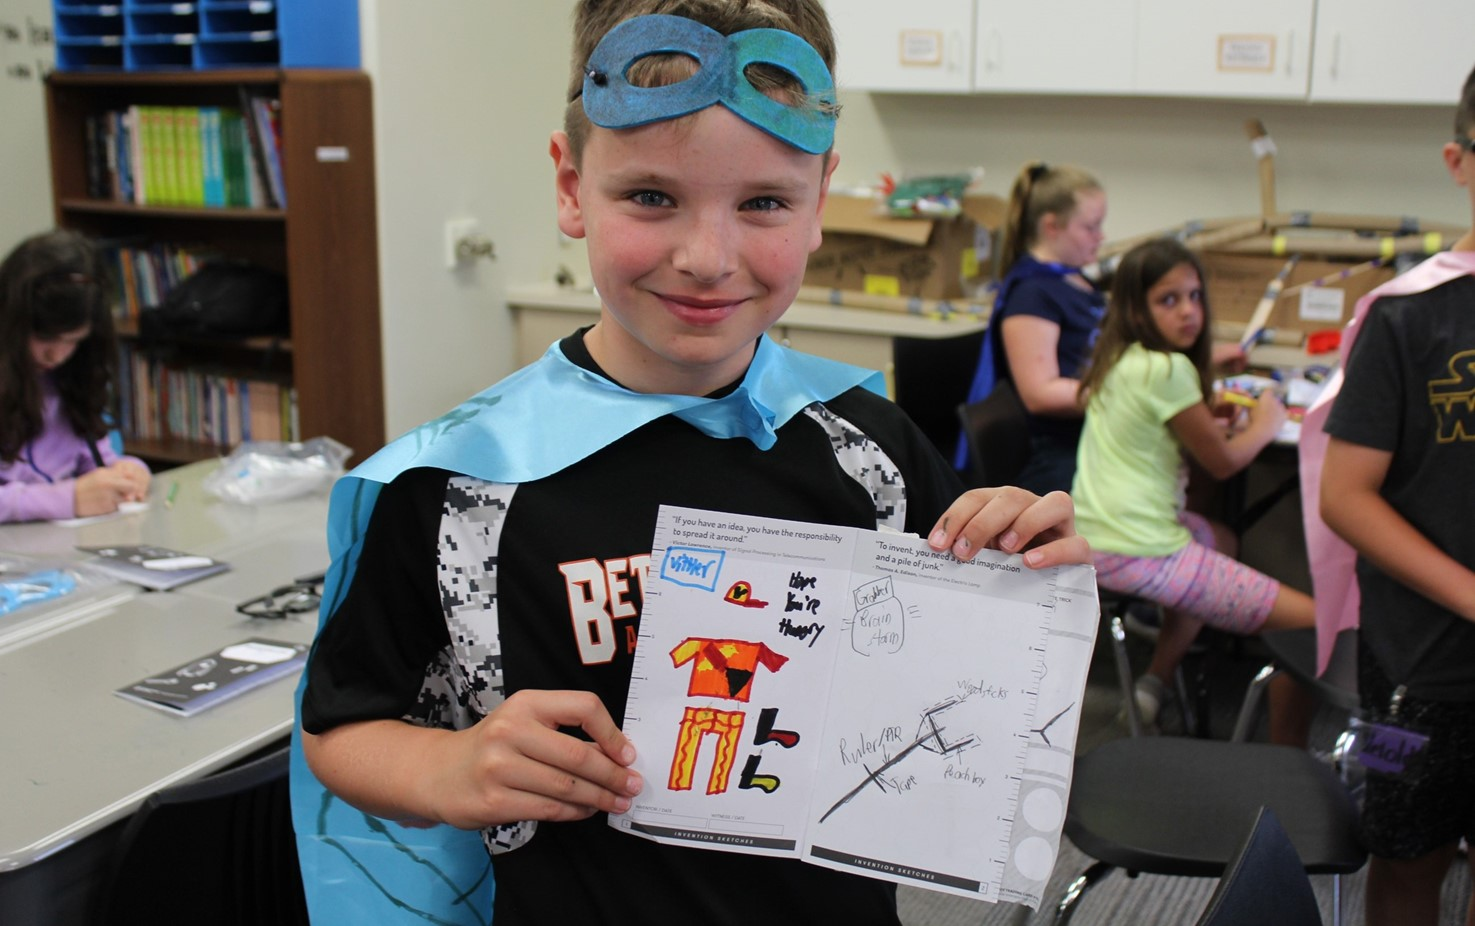 Student dressed as his invention super hero